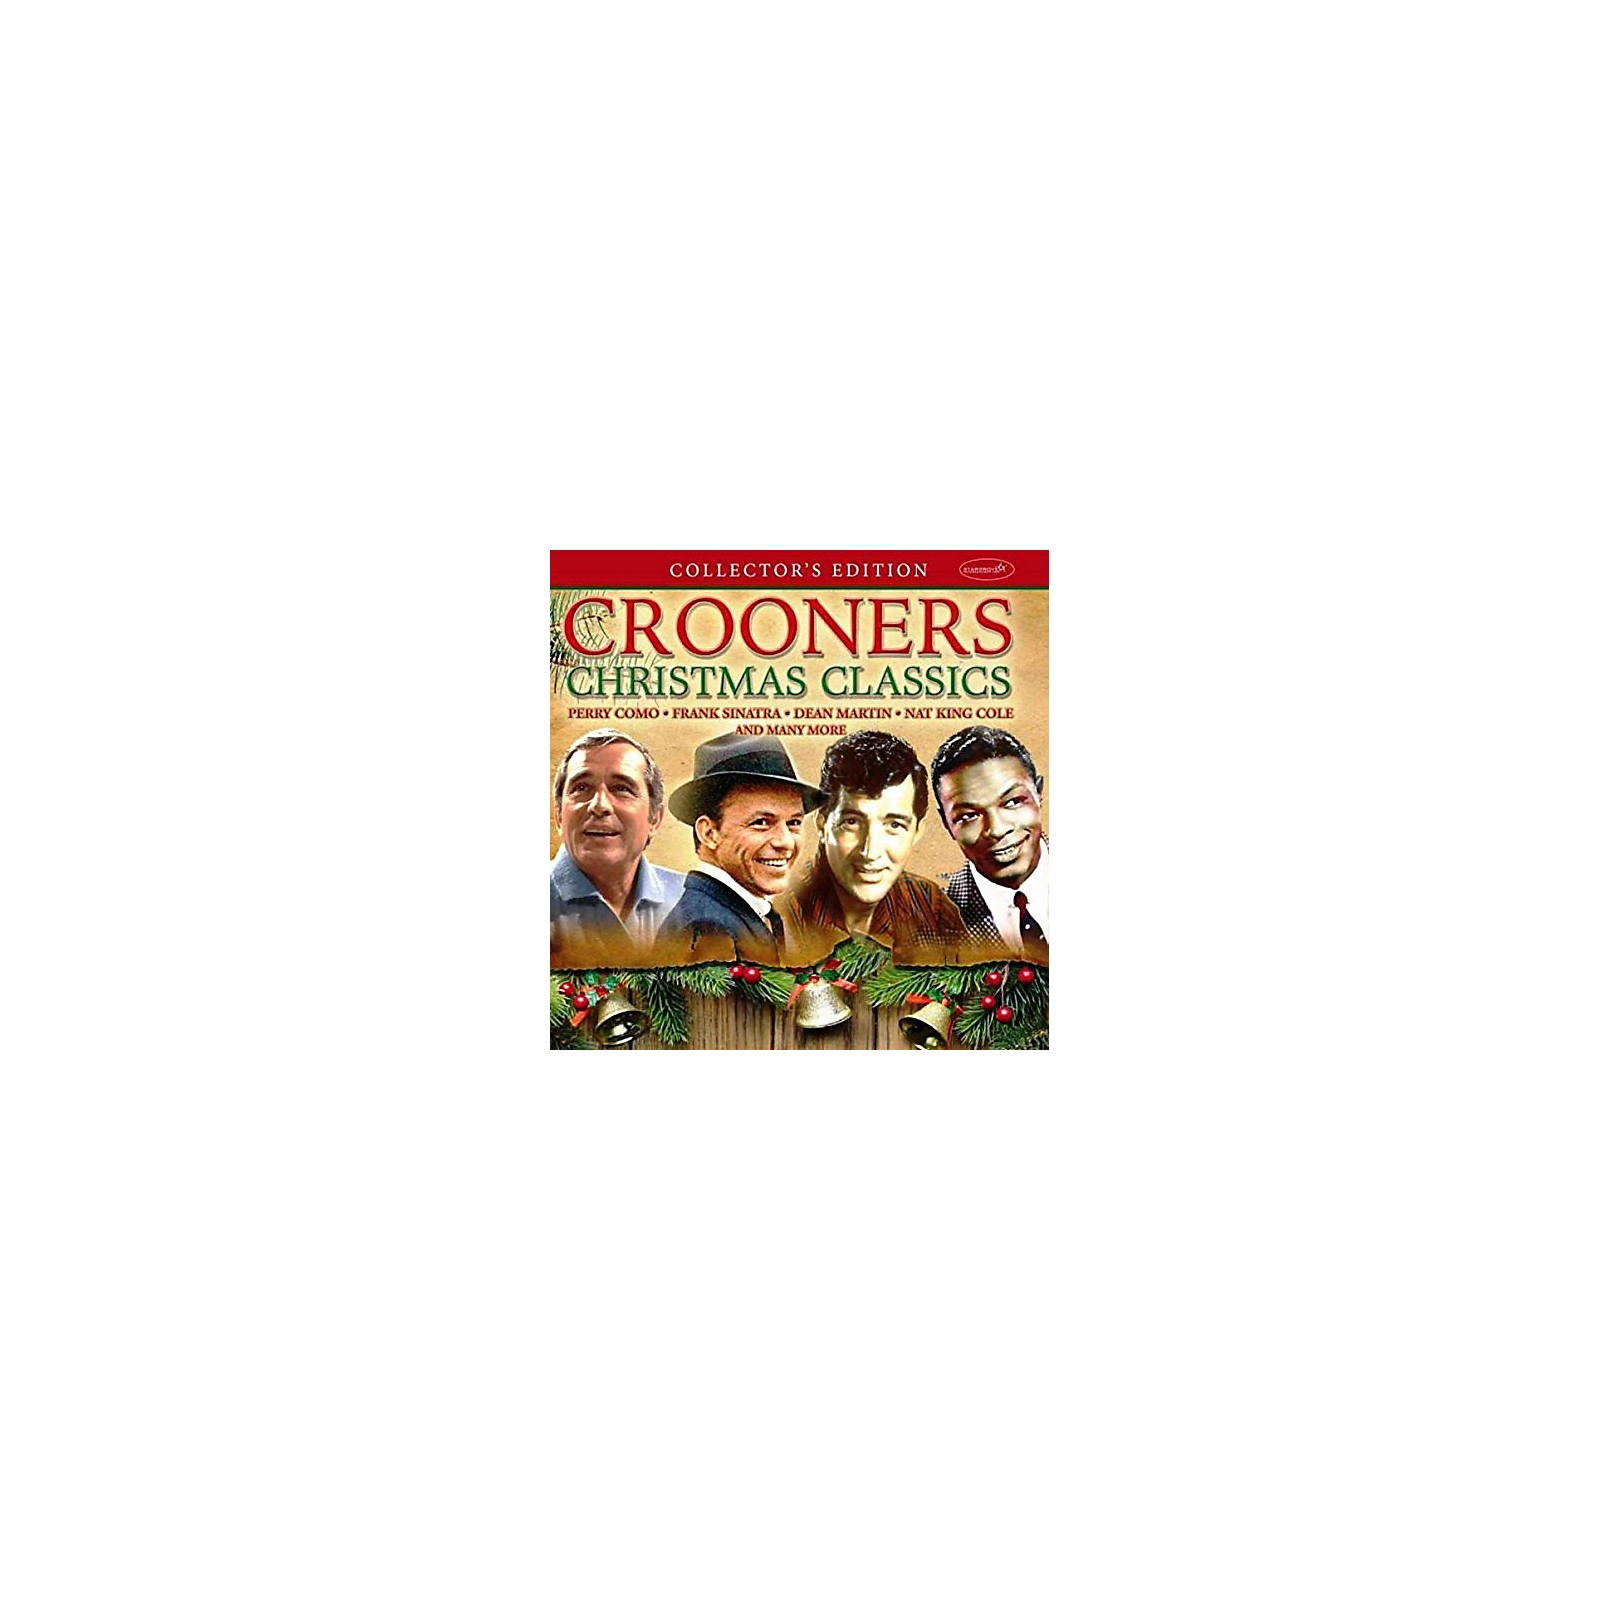 Alliance Crooners Christmas Classics: Collector's Edition